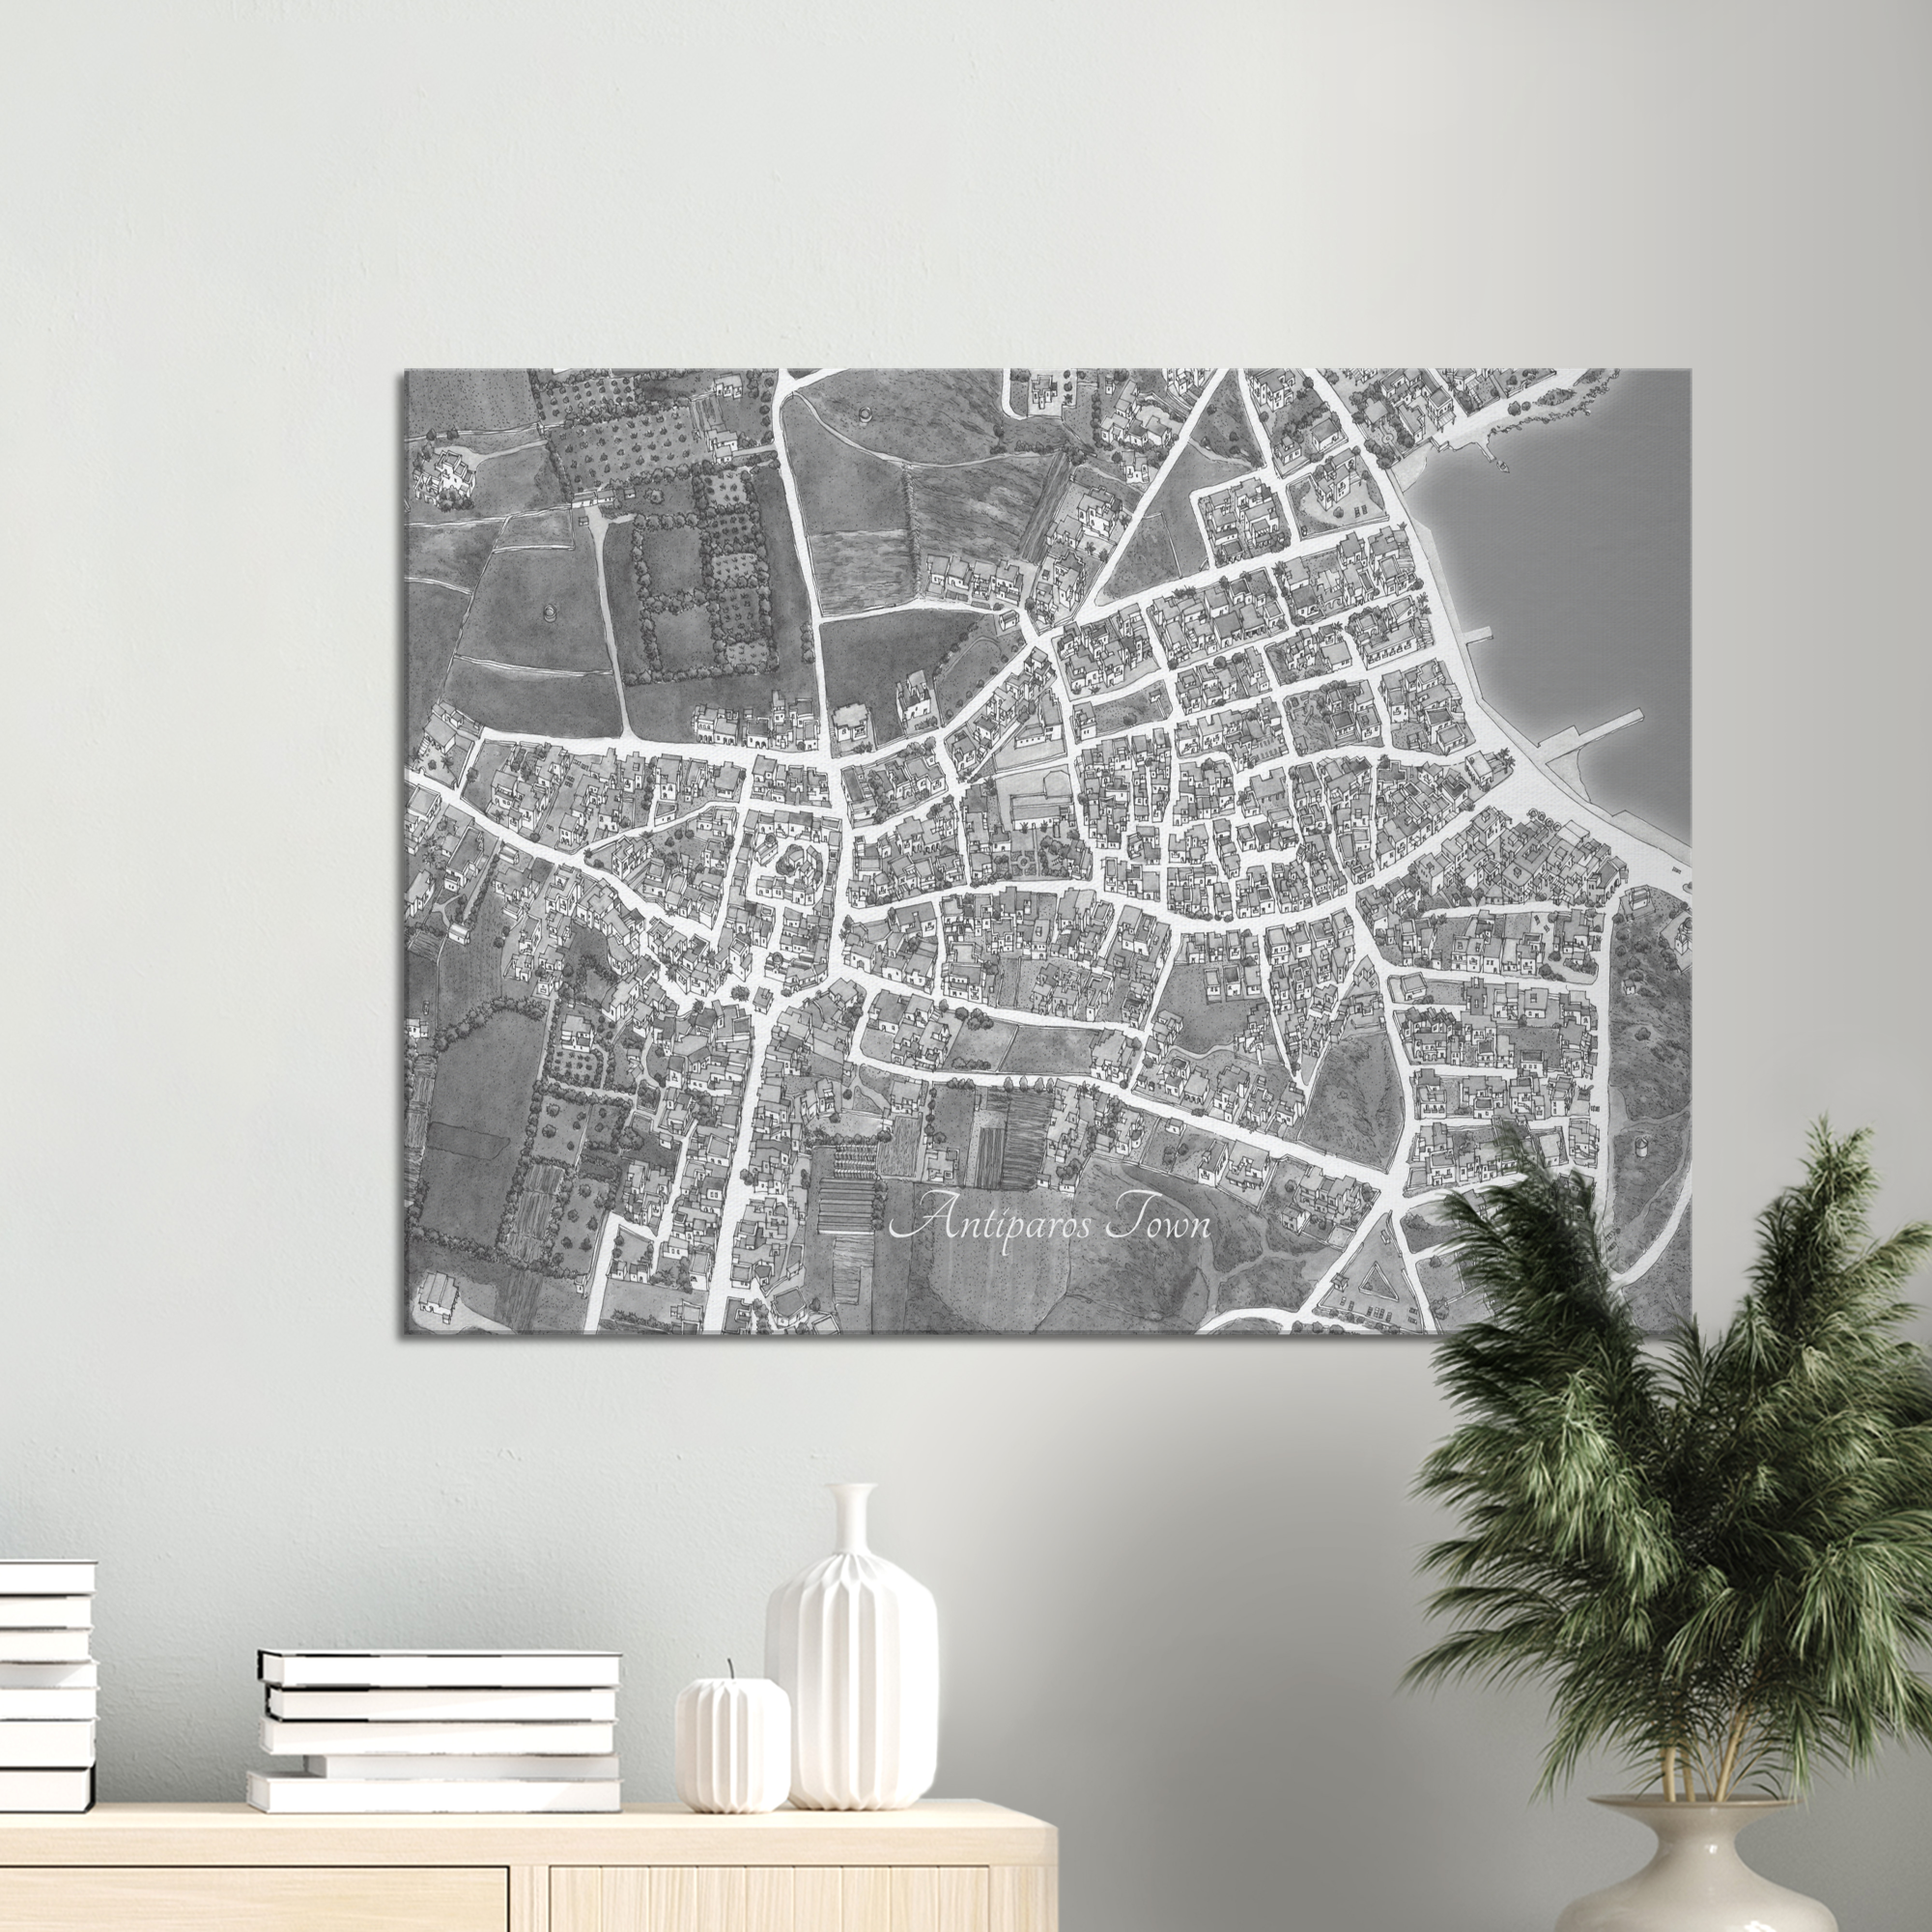 Antiparos Town, Greece – Black & White Canvas Print – Framed